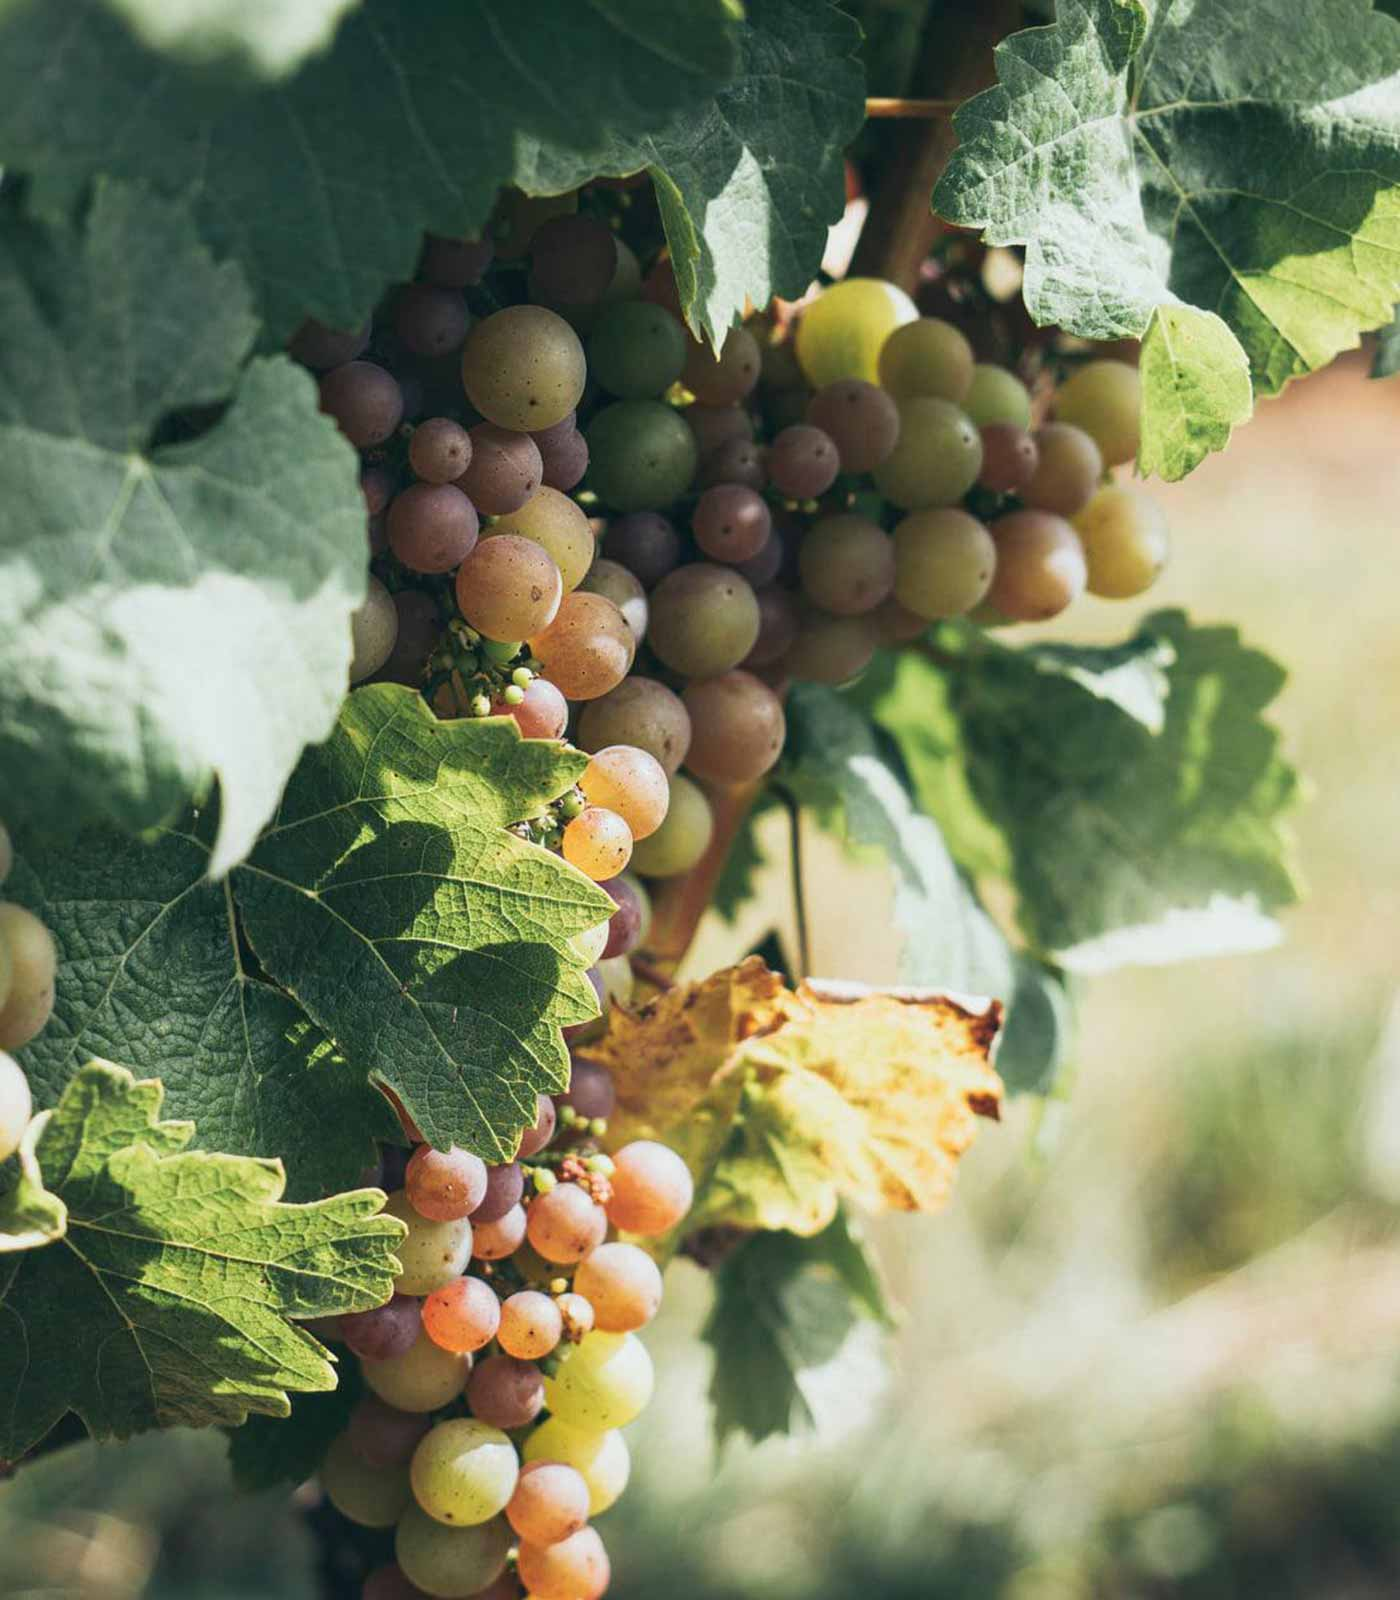 Photo of White Ripe Grapes in a Vineyard at Pomeroy Cellars